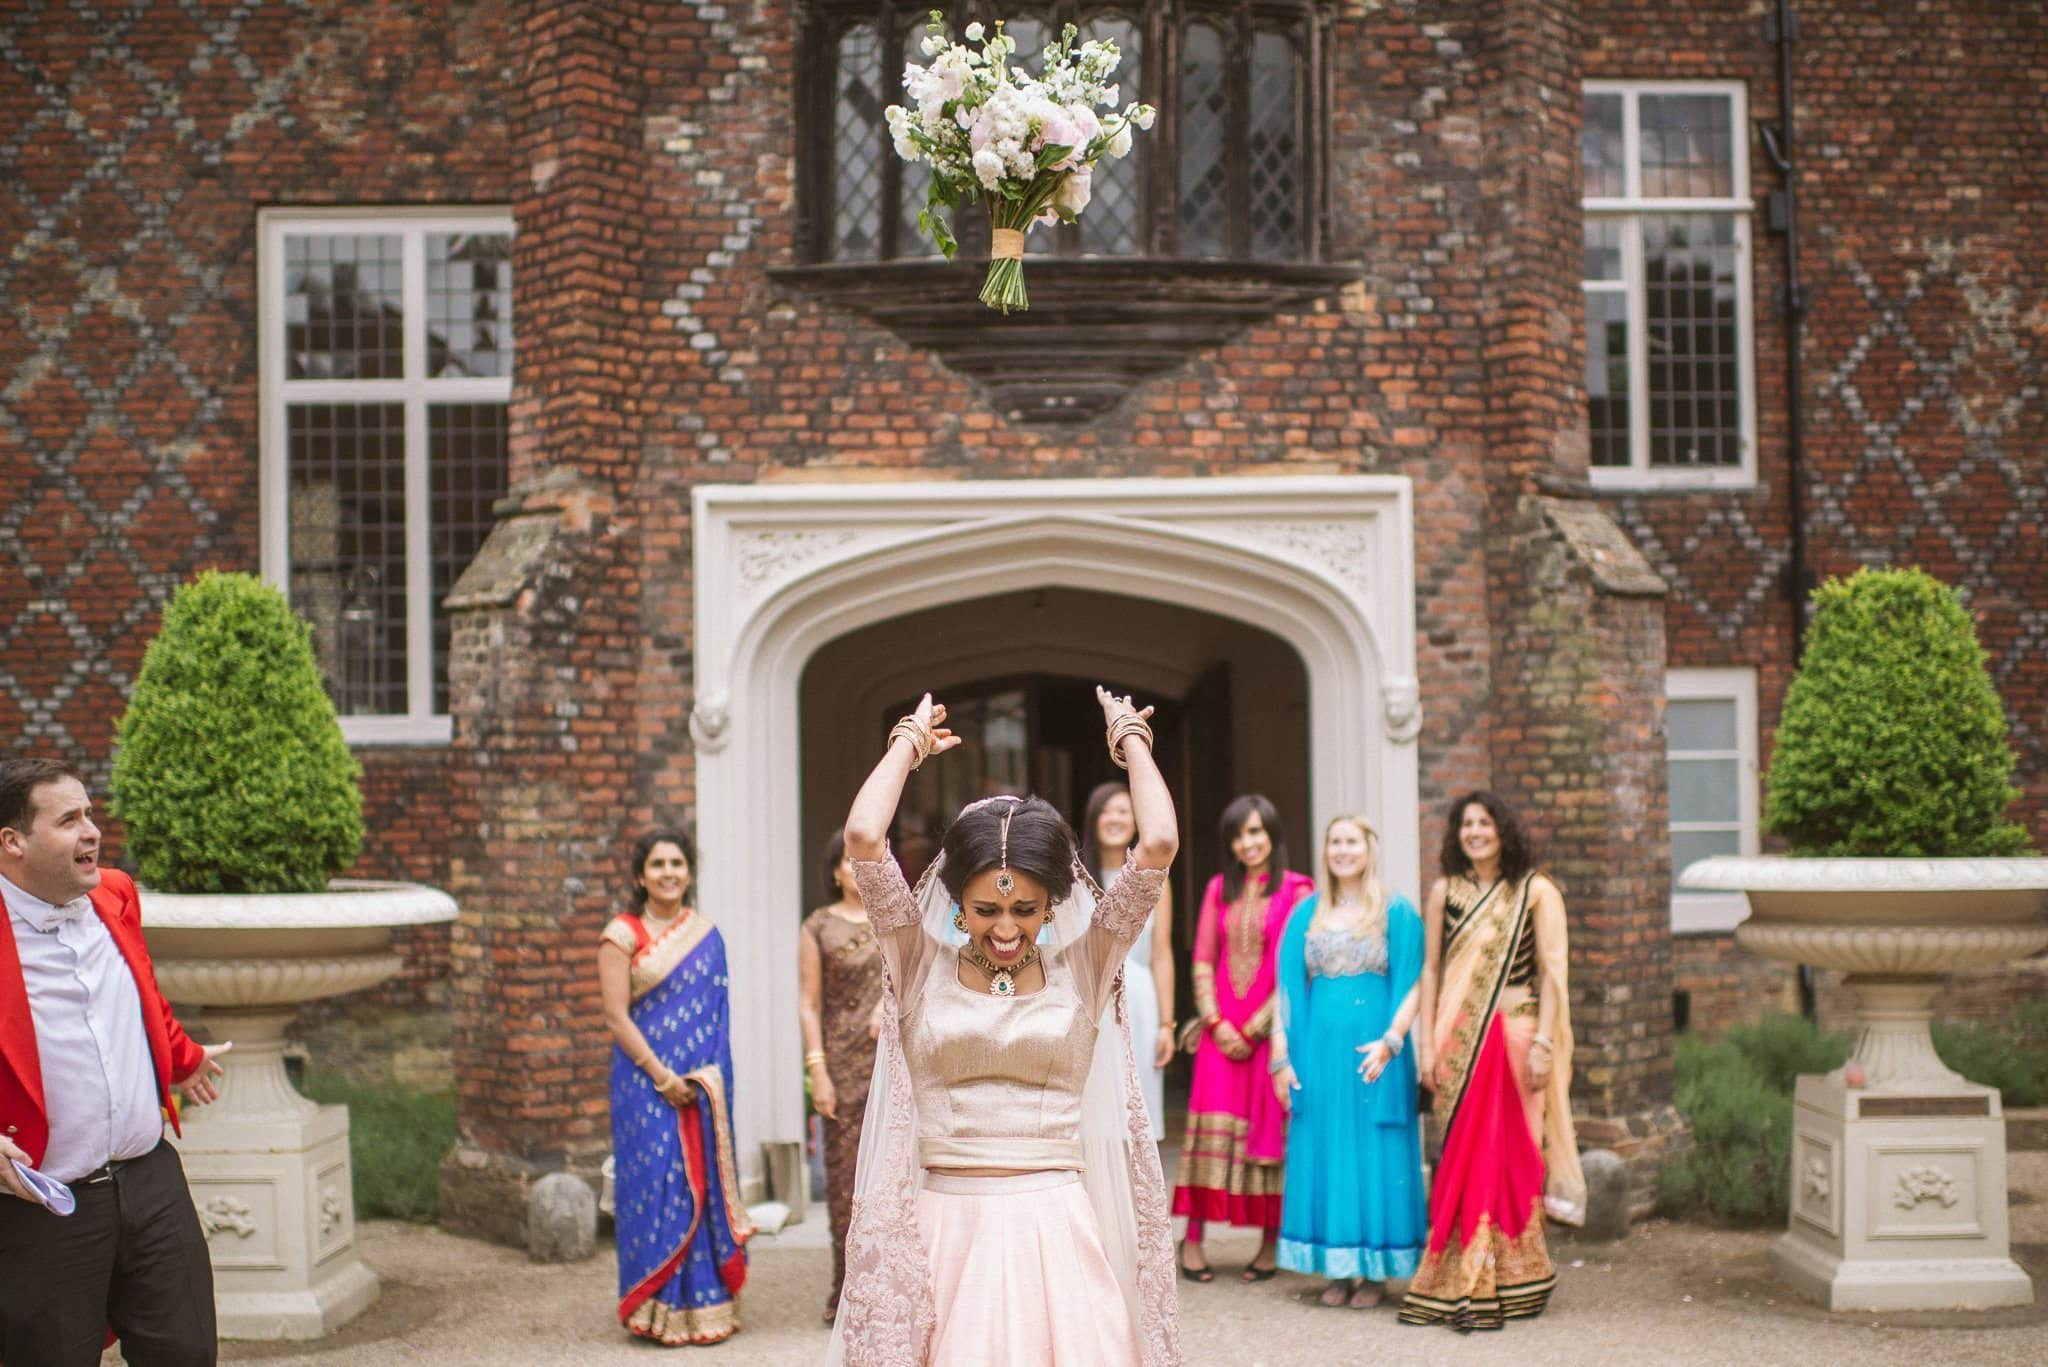 Sorayya throws her bouquet backwards over her head and the guests behind her run to catch it